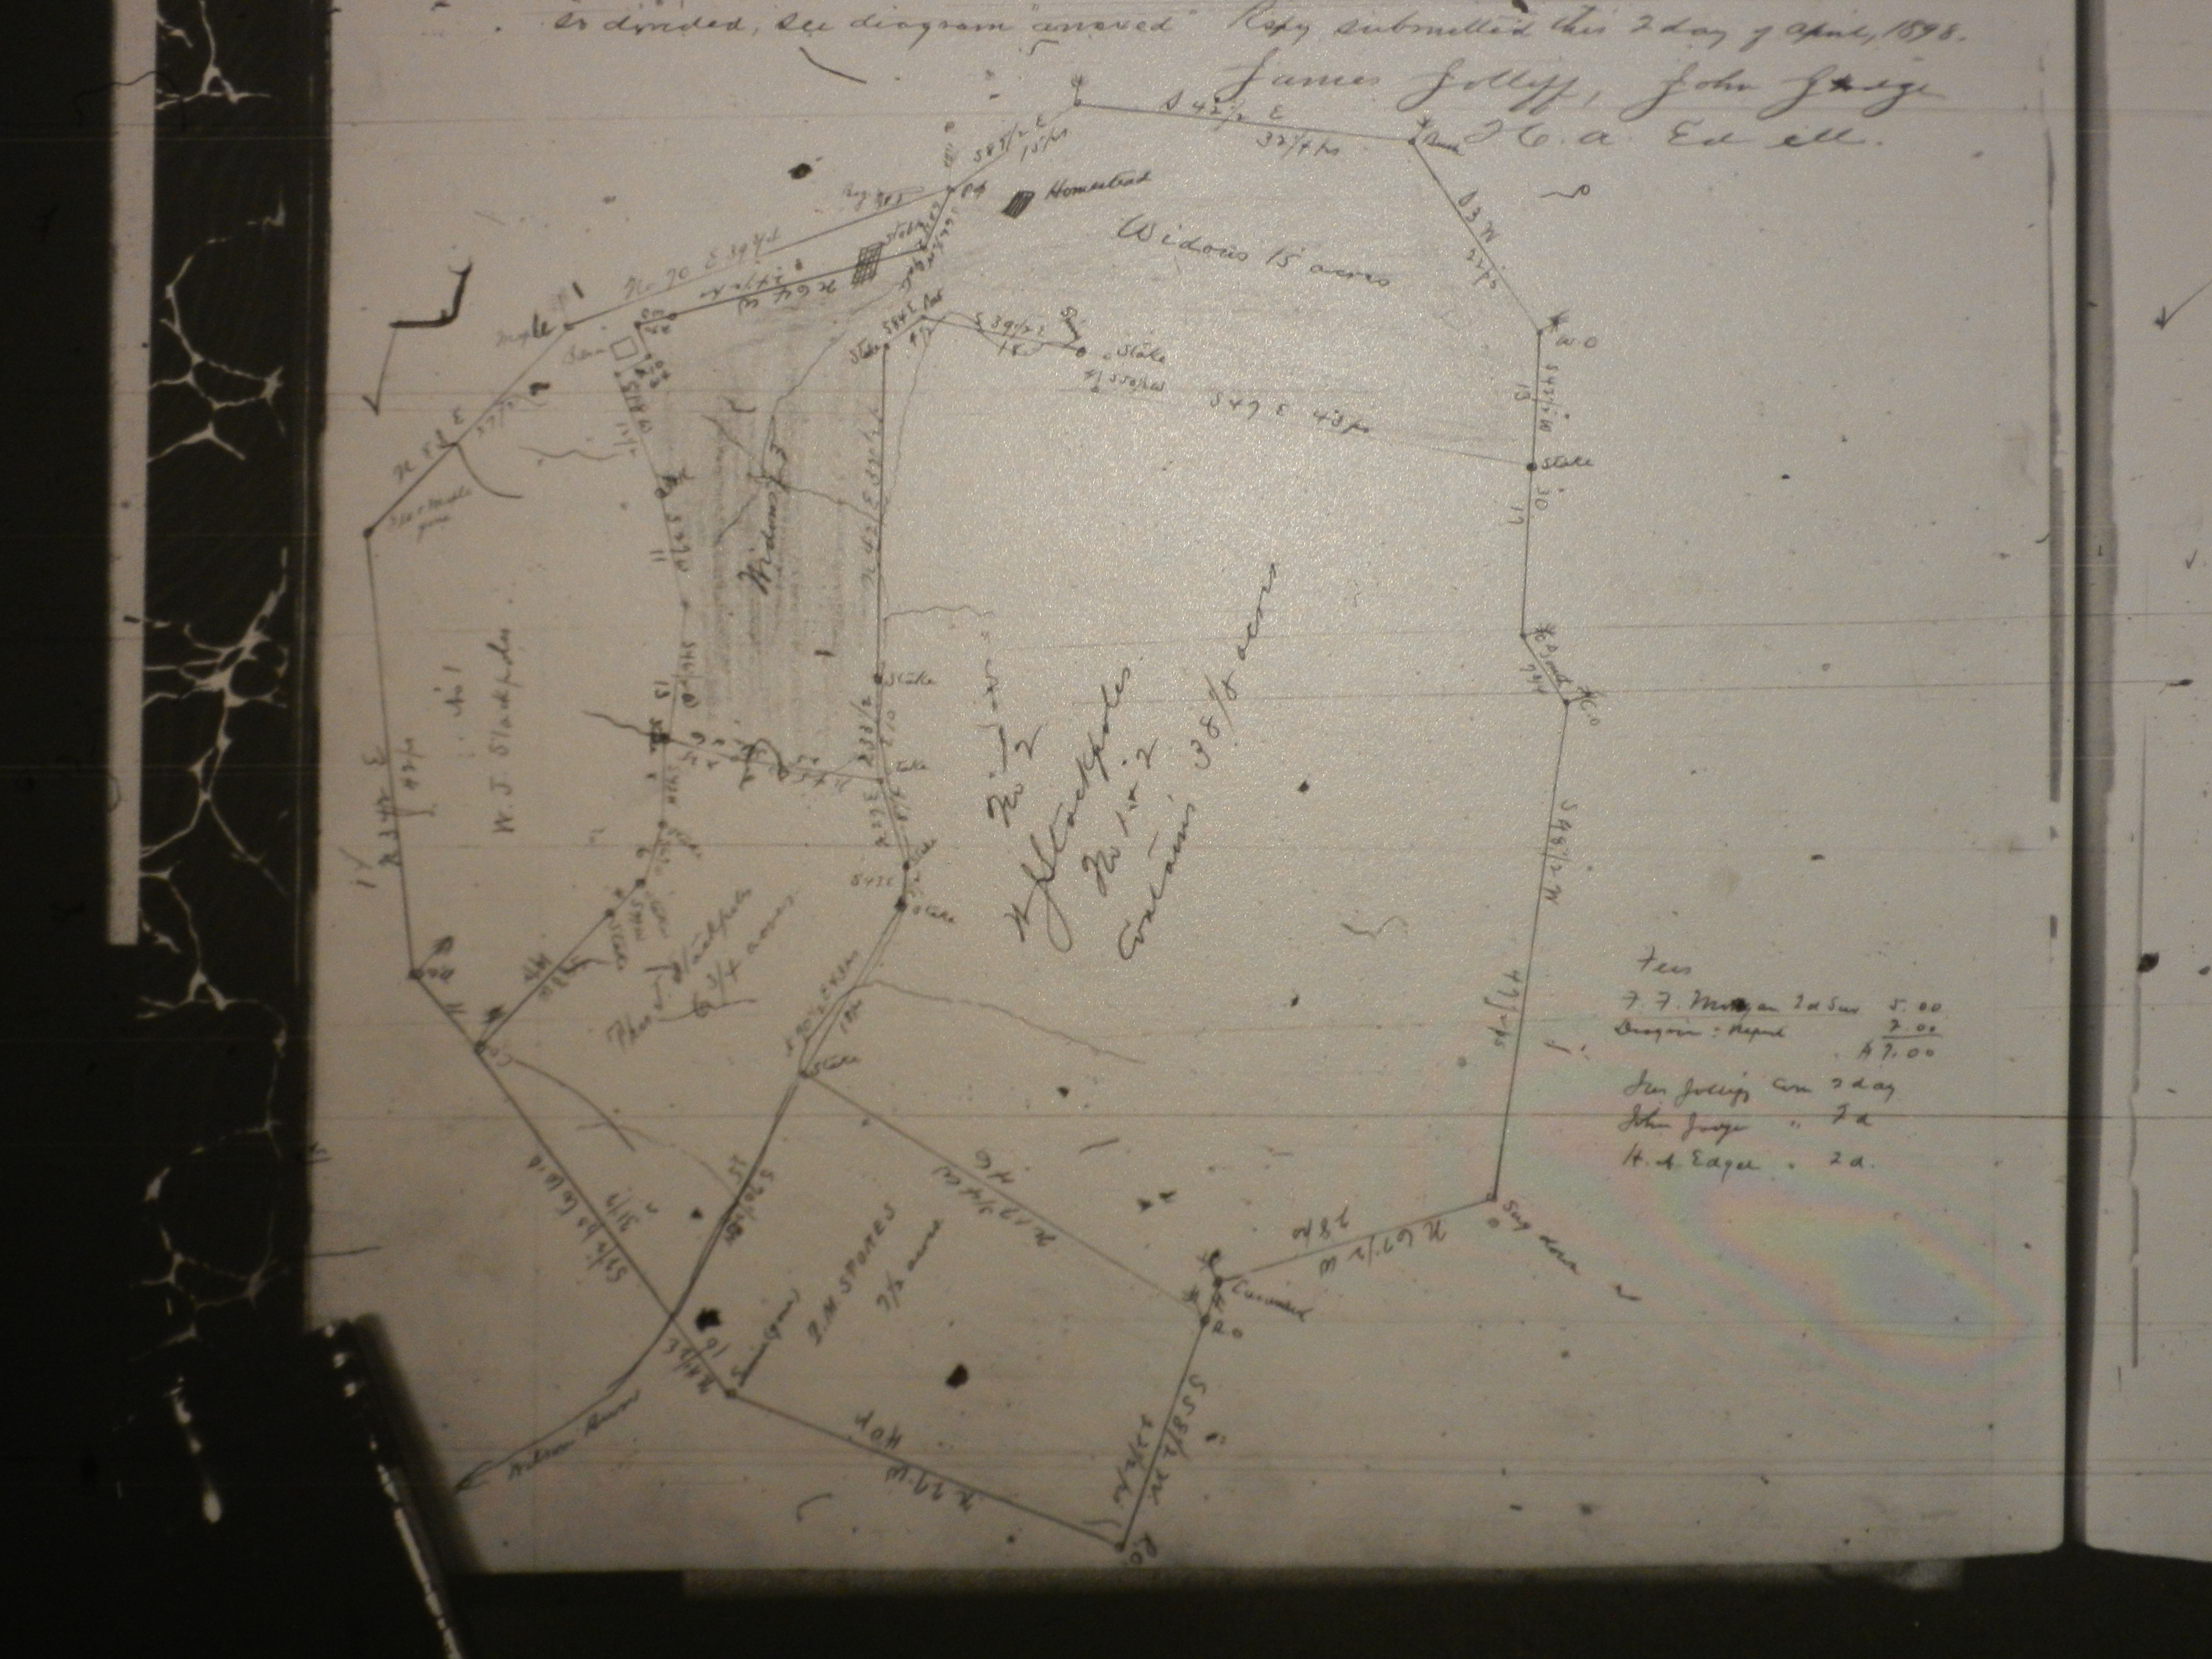 Boundaries drawn out on deed to determine Lydia's dower property location.